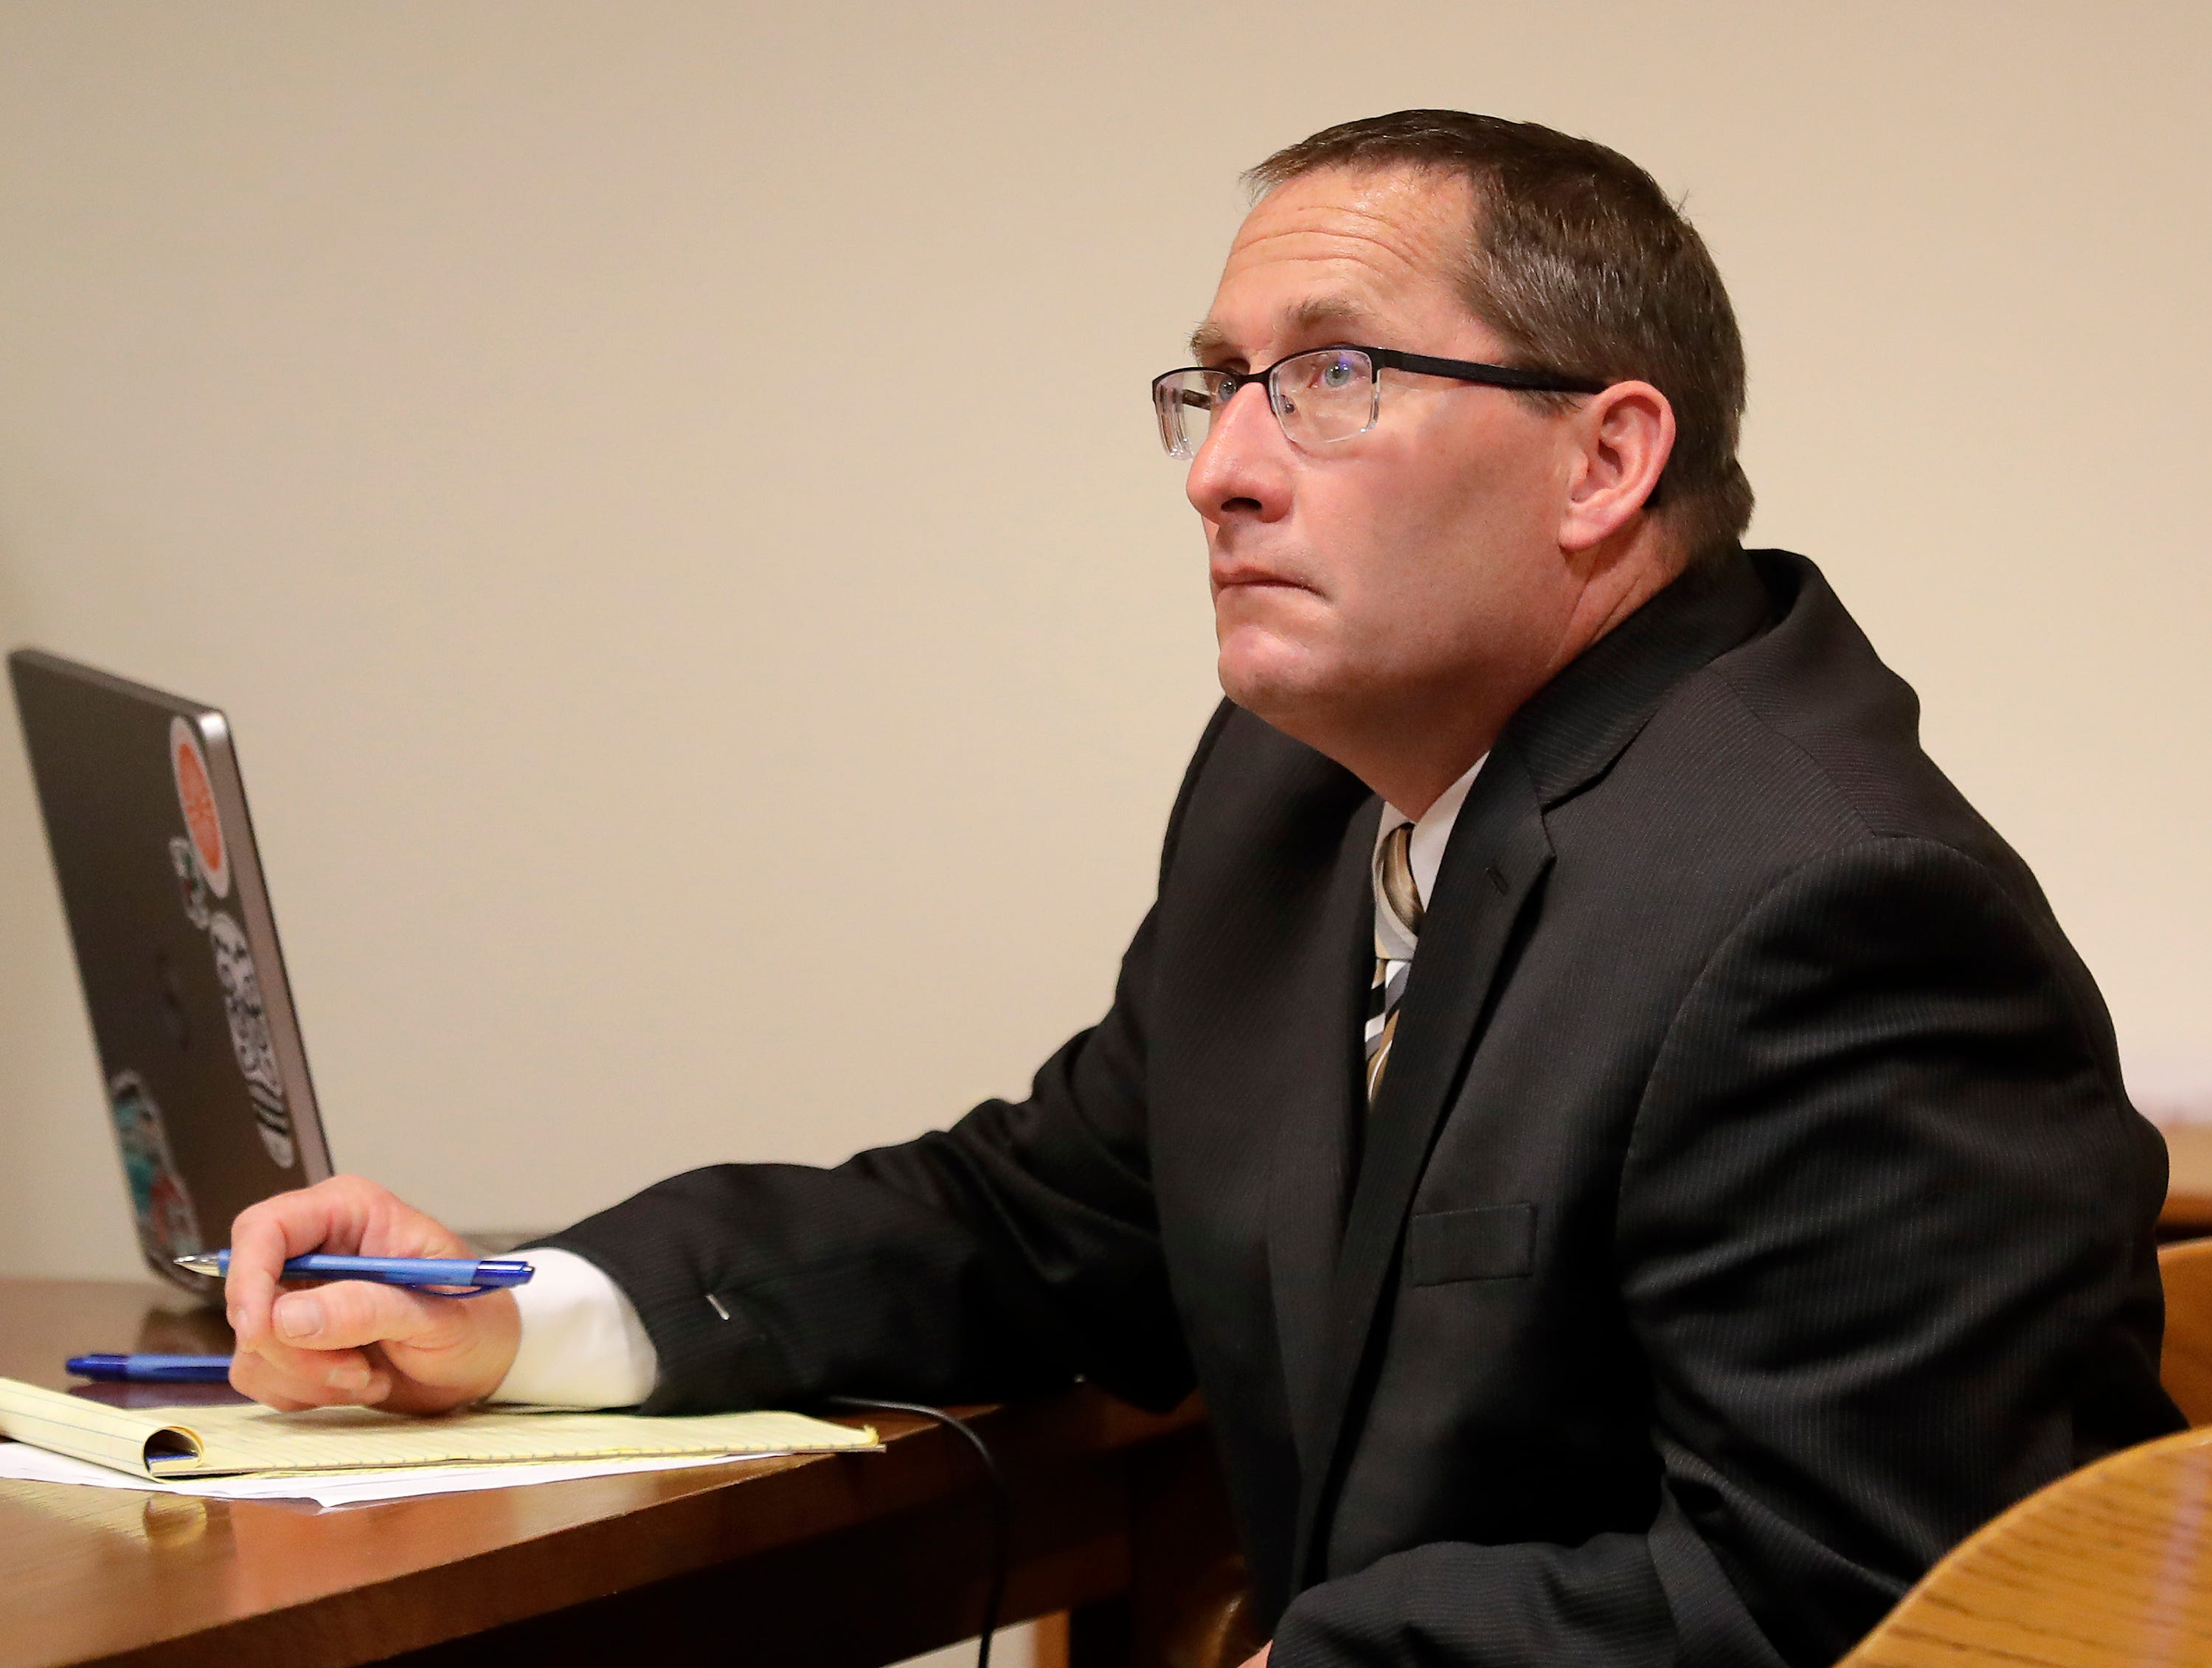 Jason Lavigne during day 1 of of a jury trial in Outagamie County Court on Tuesday, April 23, 2019, in Appleton, Wis. Lavigne is a former Little Chute High School teacher accused of sexually assaulting a 14-year-old student in 1999